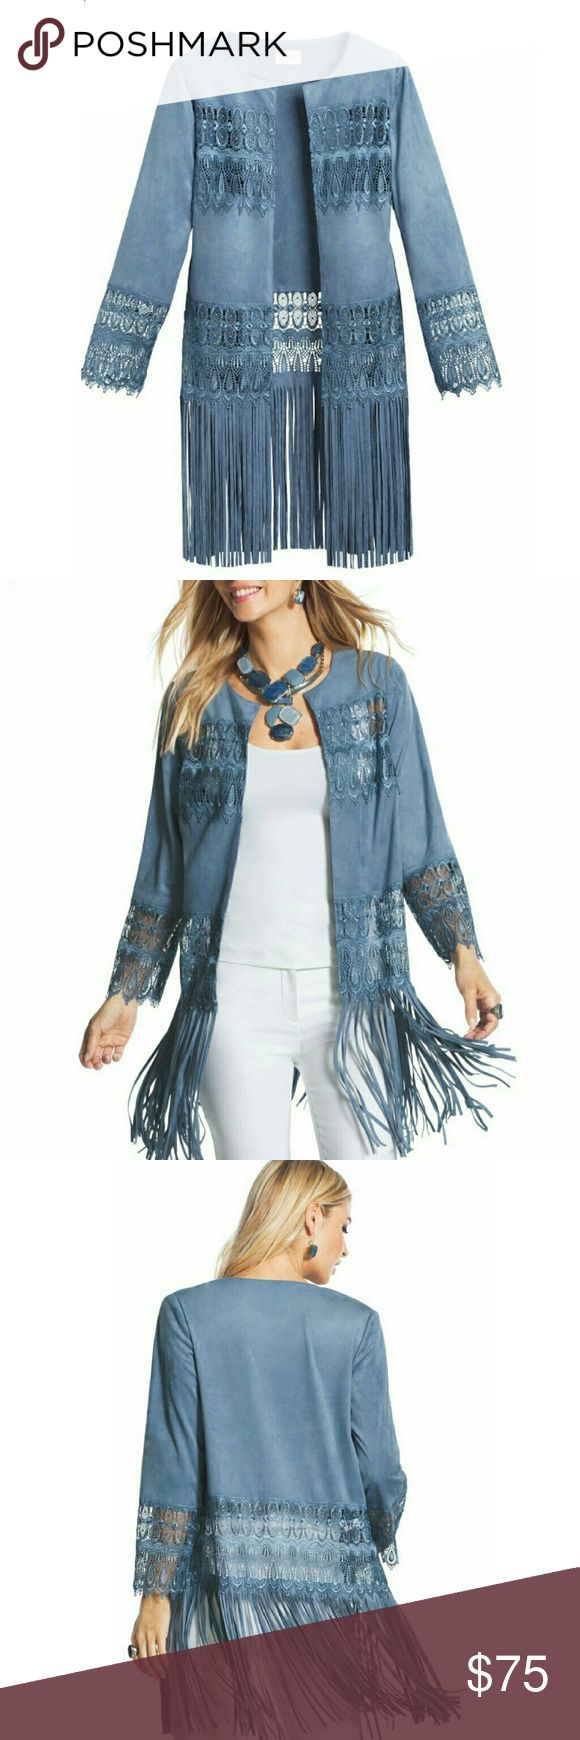 """Lace & Fringe Suede Jacket Open front blue faux suede jacket. Sheer lace panels, bracelet sleeves. Extra long fringe swings from hips. Soft polyester/spandex blend.  Size: 12 Measurements: Bust: 22""""  Sleeve: 21""""  Length: 36""""  NO Trade / NO Paypal Chicos Jackets & Coats"""